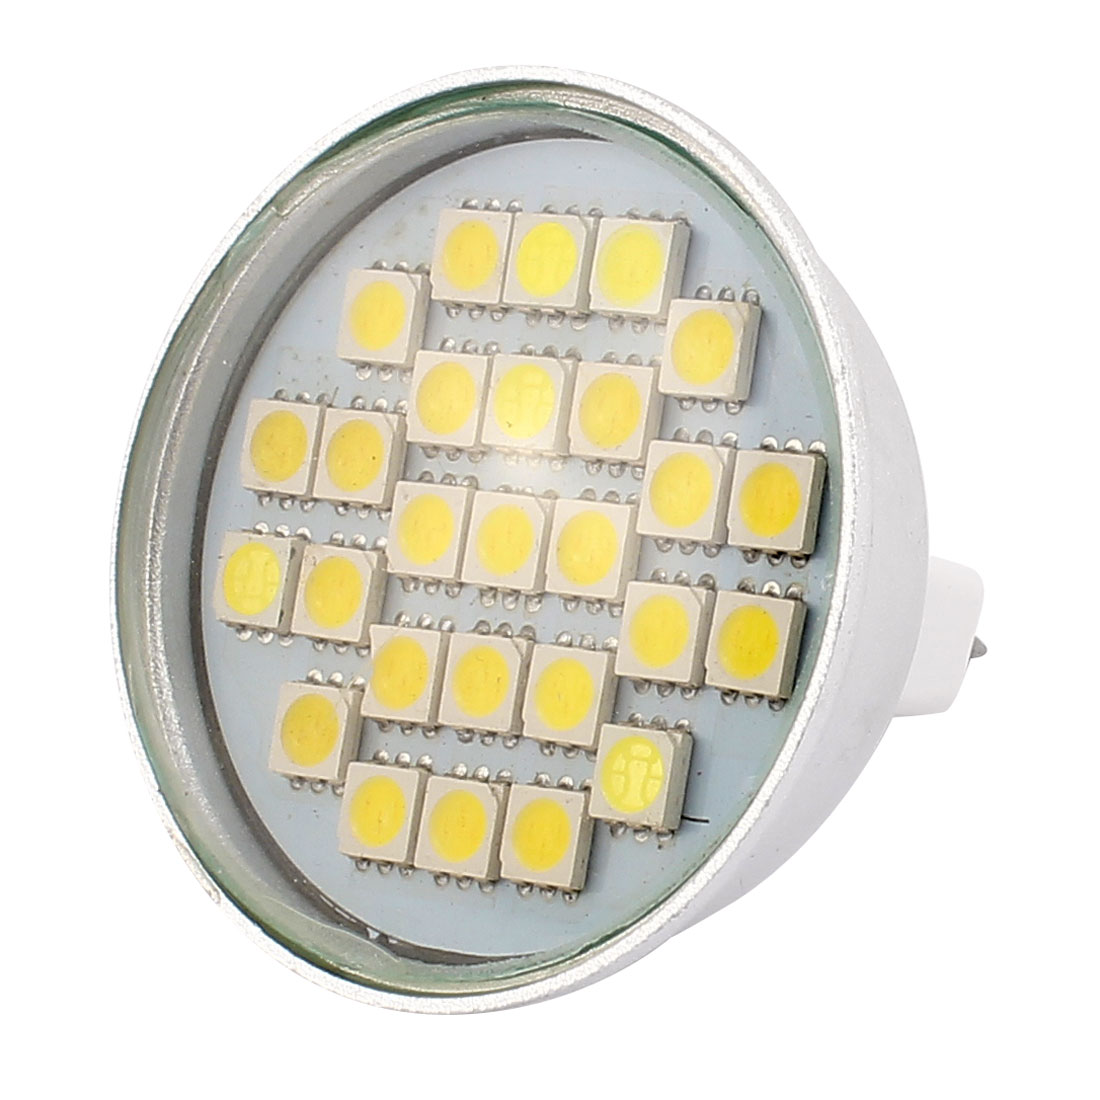 220V 4W MR16 5050 SMD 27 LEDs LED Bulb Light Spotlight Lamp Energy Saving White